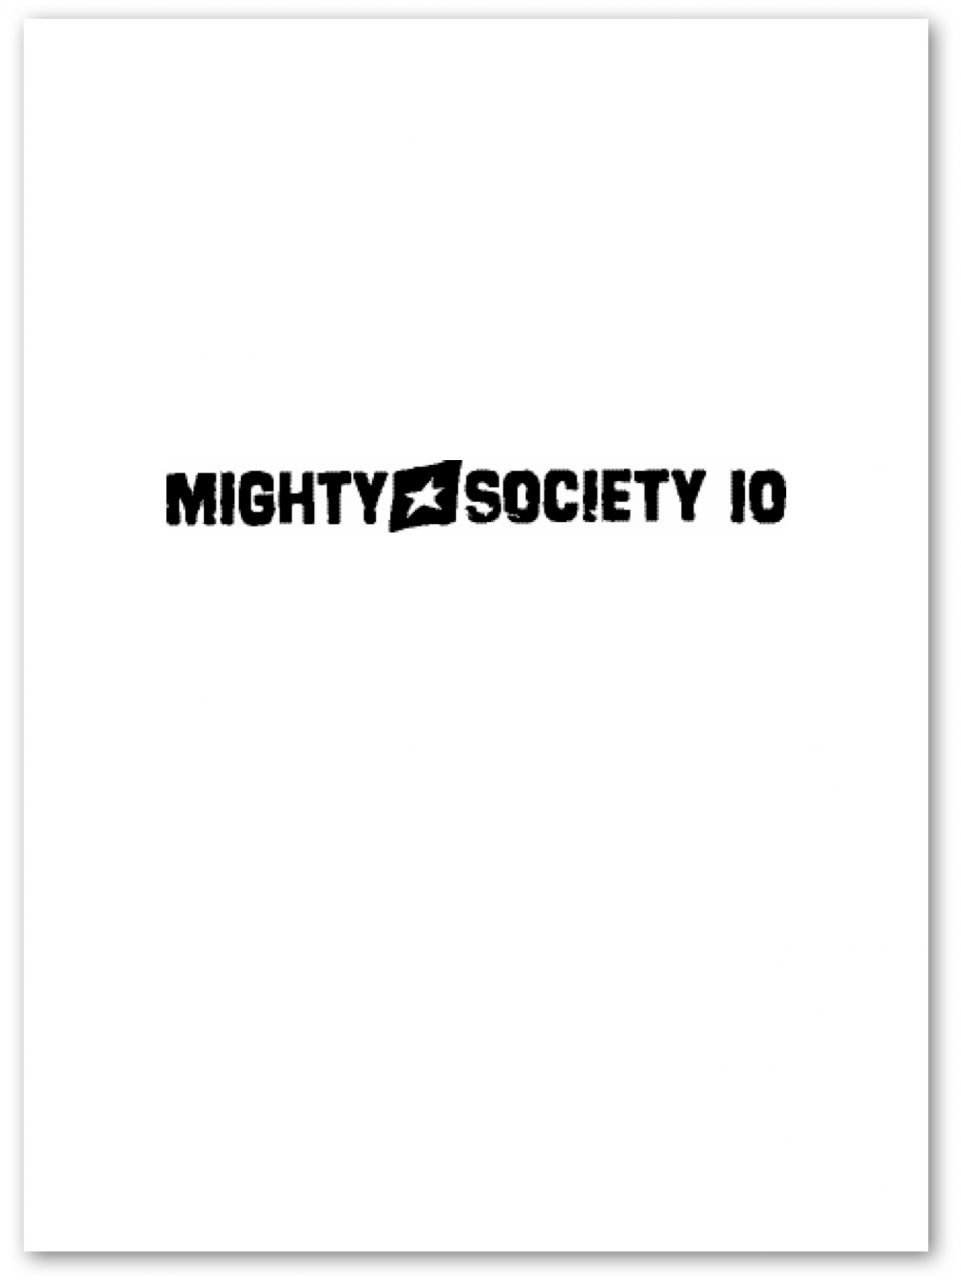 Mightysociety10